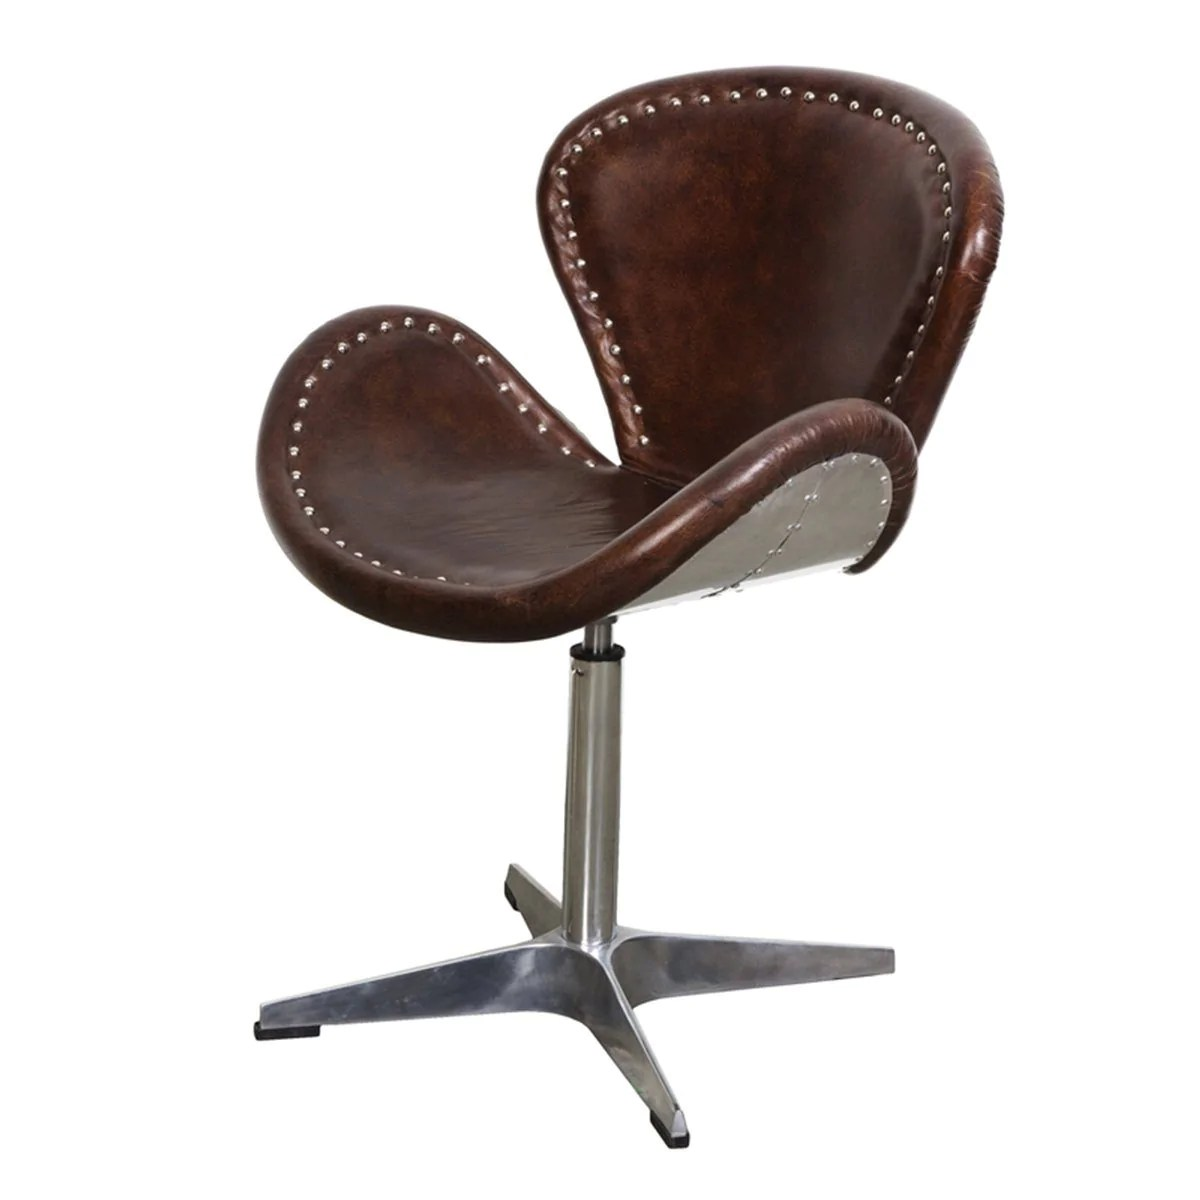 Vintage Swivel Chair Swivel Chair Brown Vintage Leather